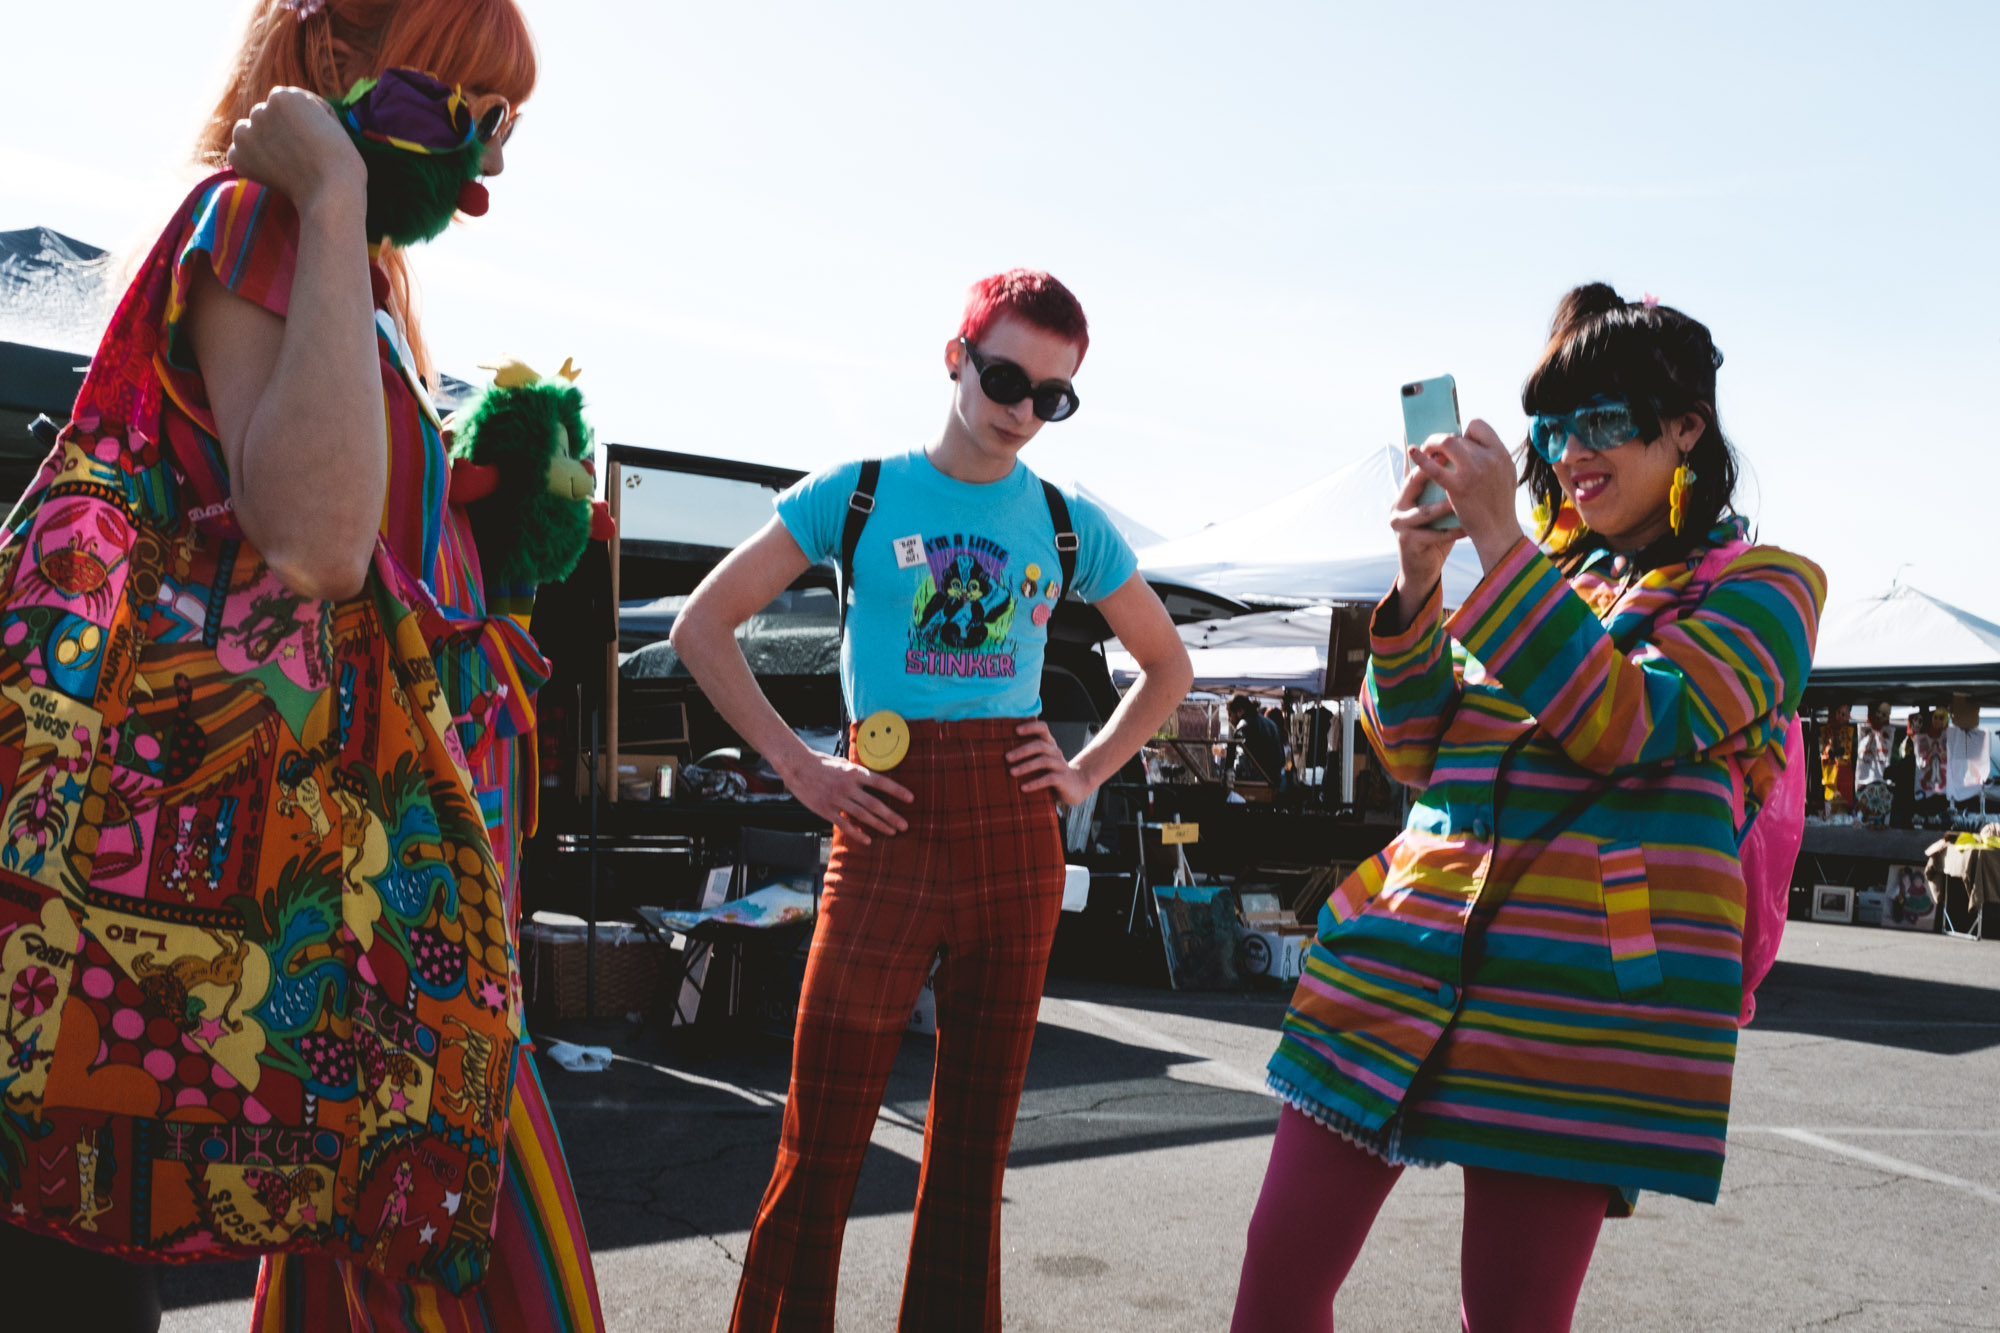 Girls dressed in colorful clothing